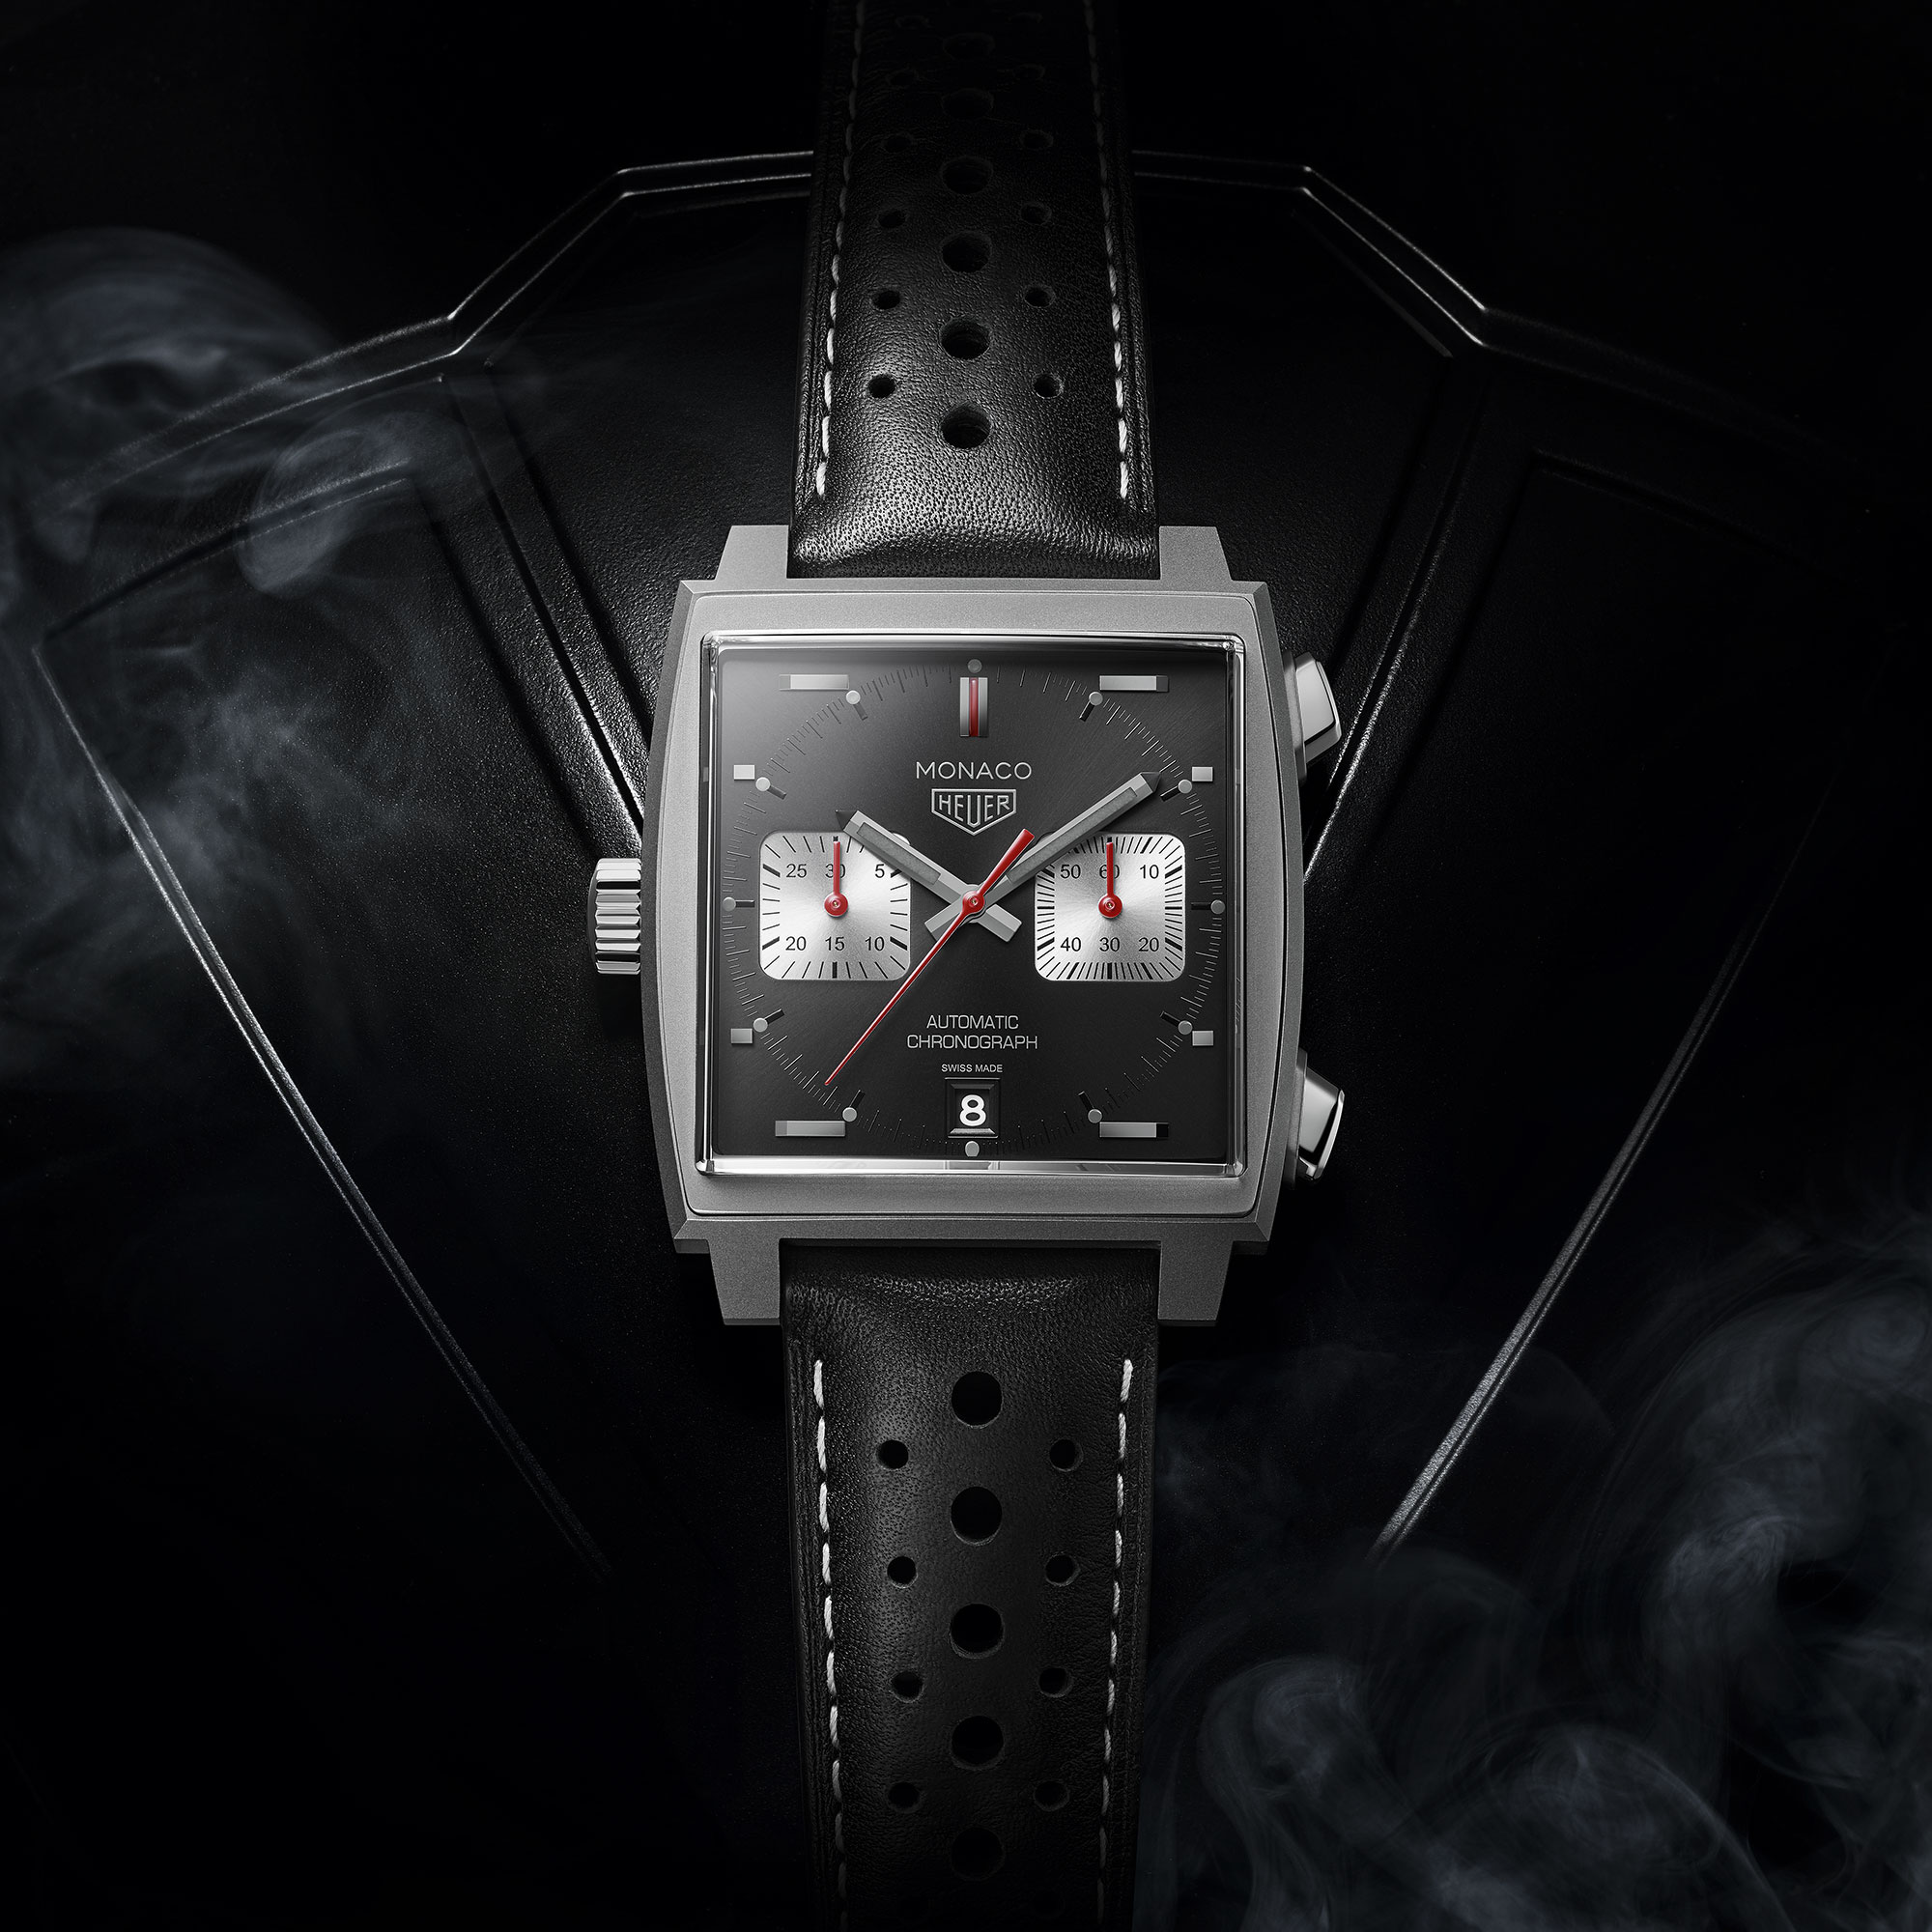 The TAG Heuer Monaco 2009-2019 Special Edition watch